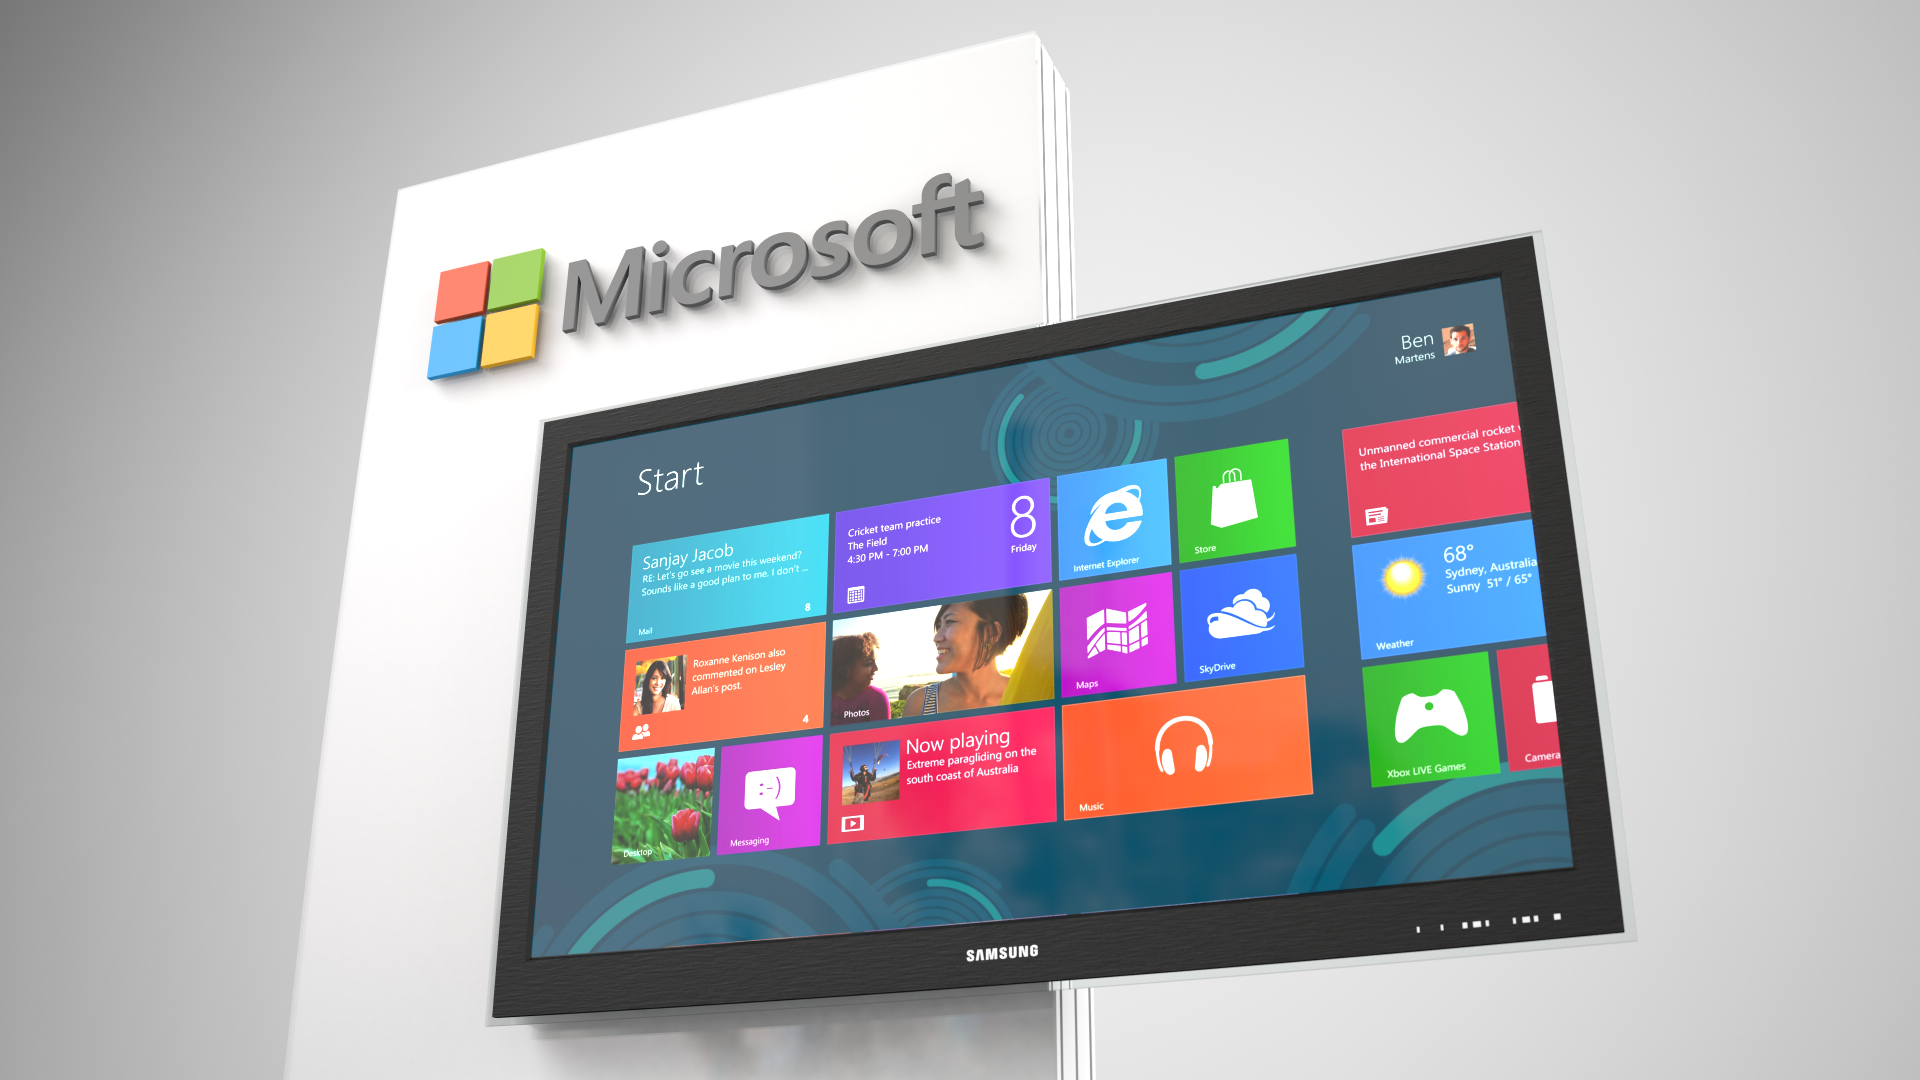 Microsoft's kiosks feature custom cabinetry and millwork, dimensional logo, vibrant graphics and integrated media devices